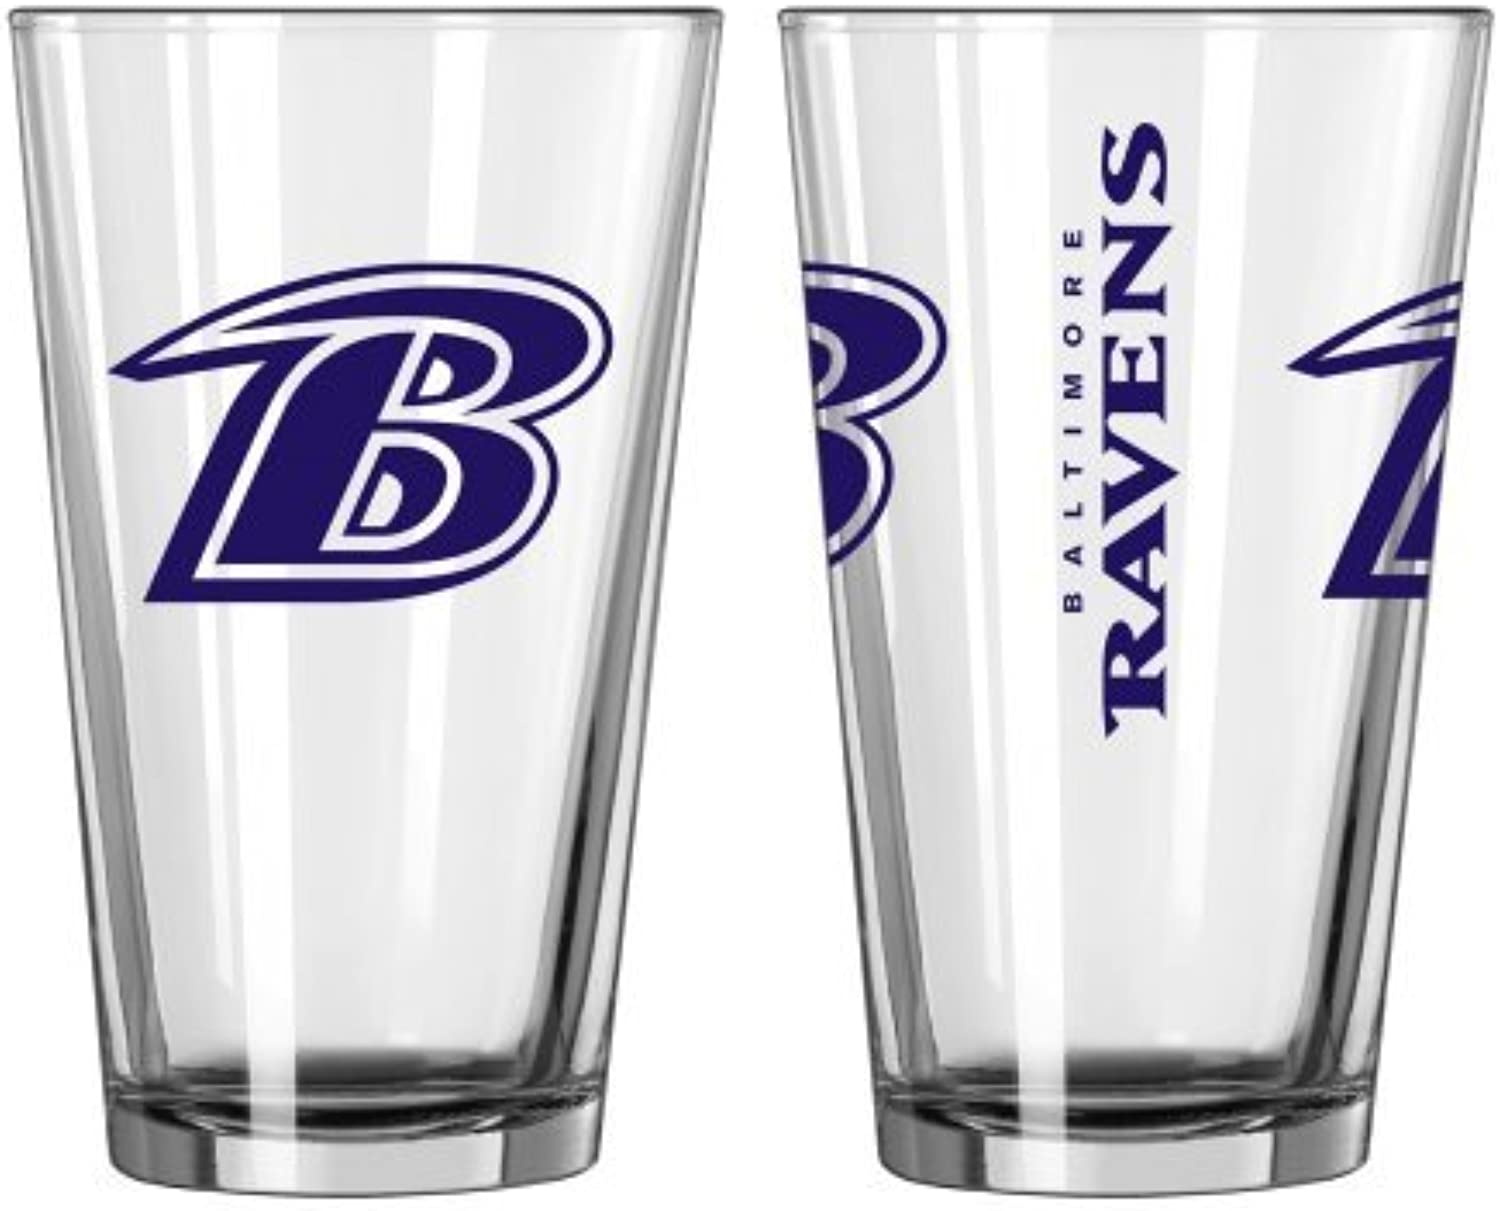 2015 NFL Football Gameday Beer Pints - 16 ounce Mixing Glasses, Set of 2